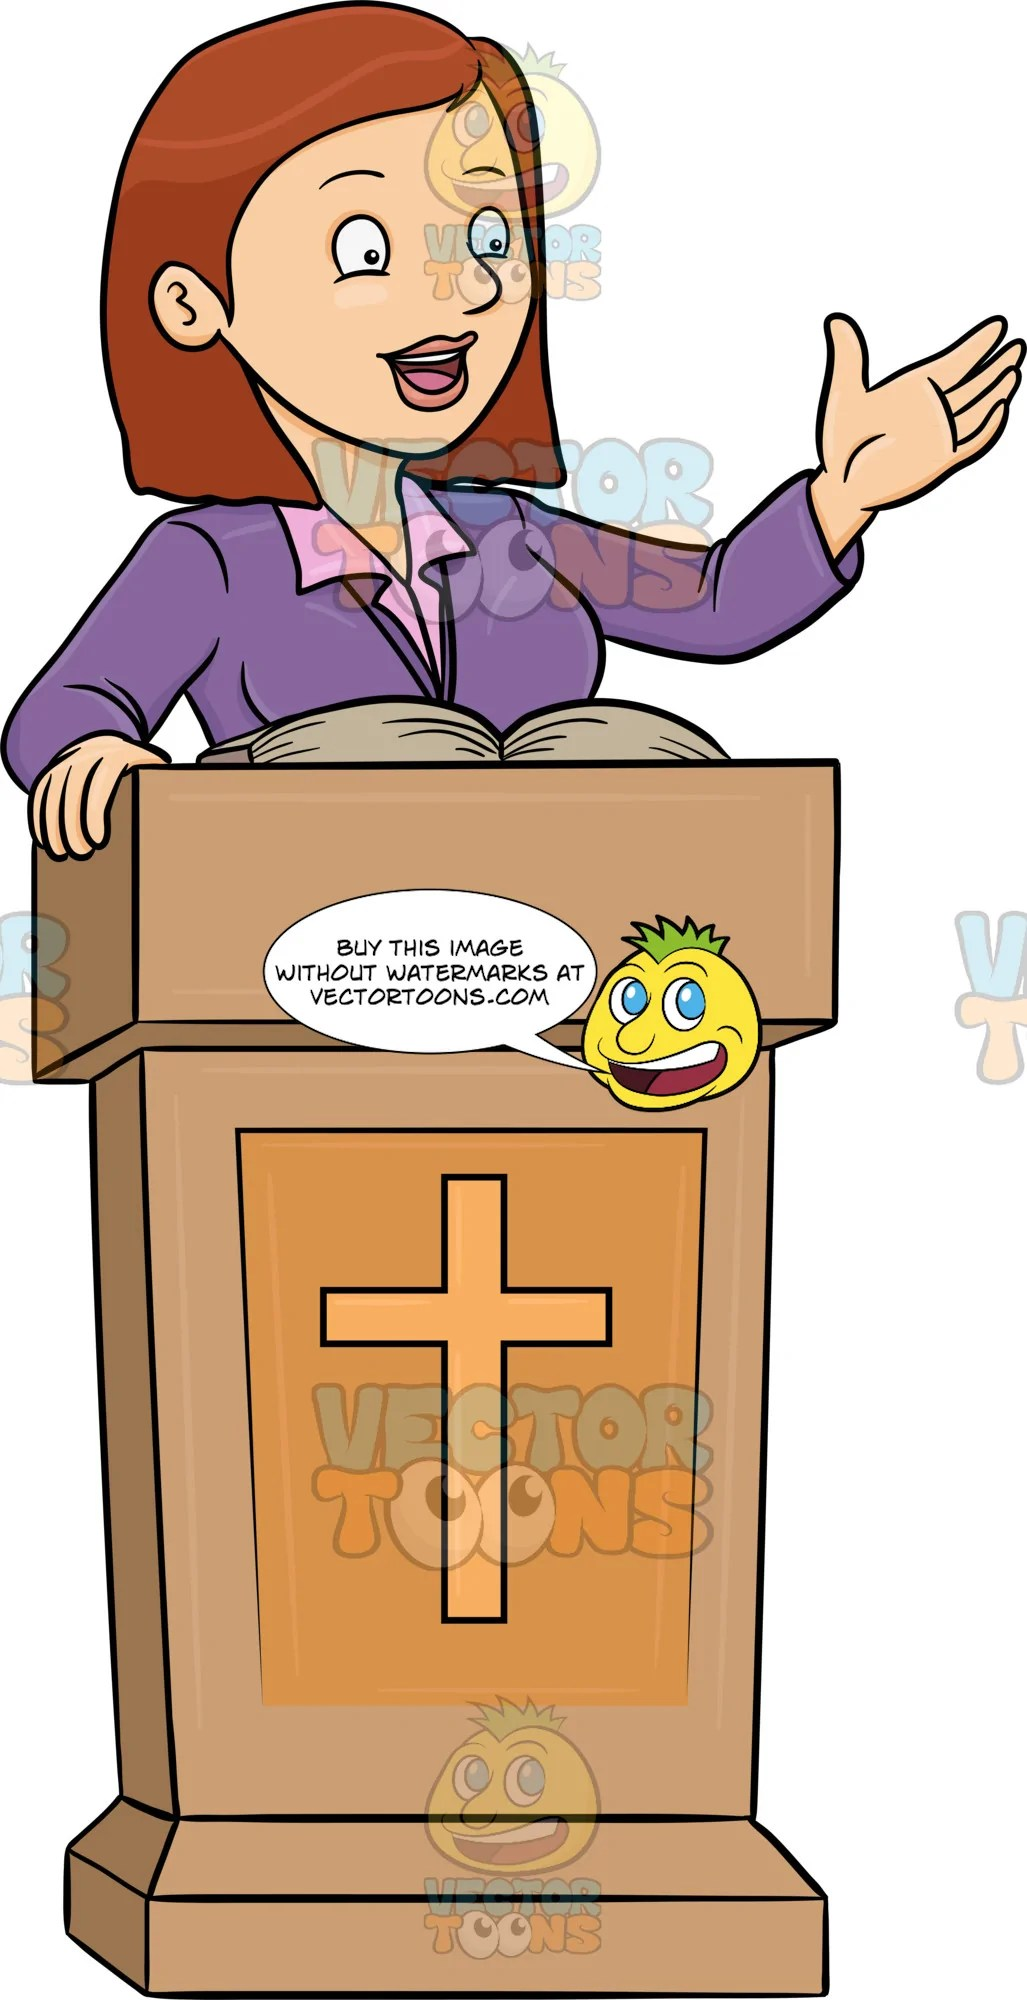 small resolution of a female preacher telling the good news clipart cartoons by vectortoons